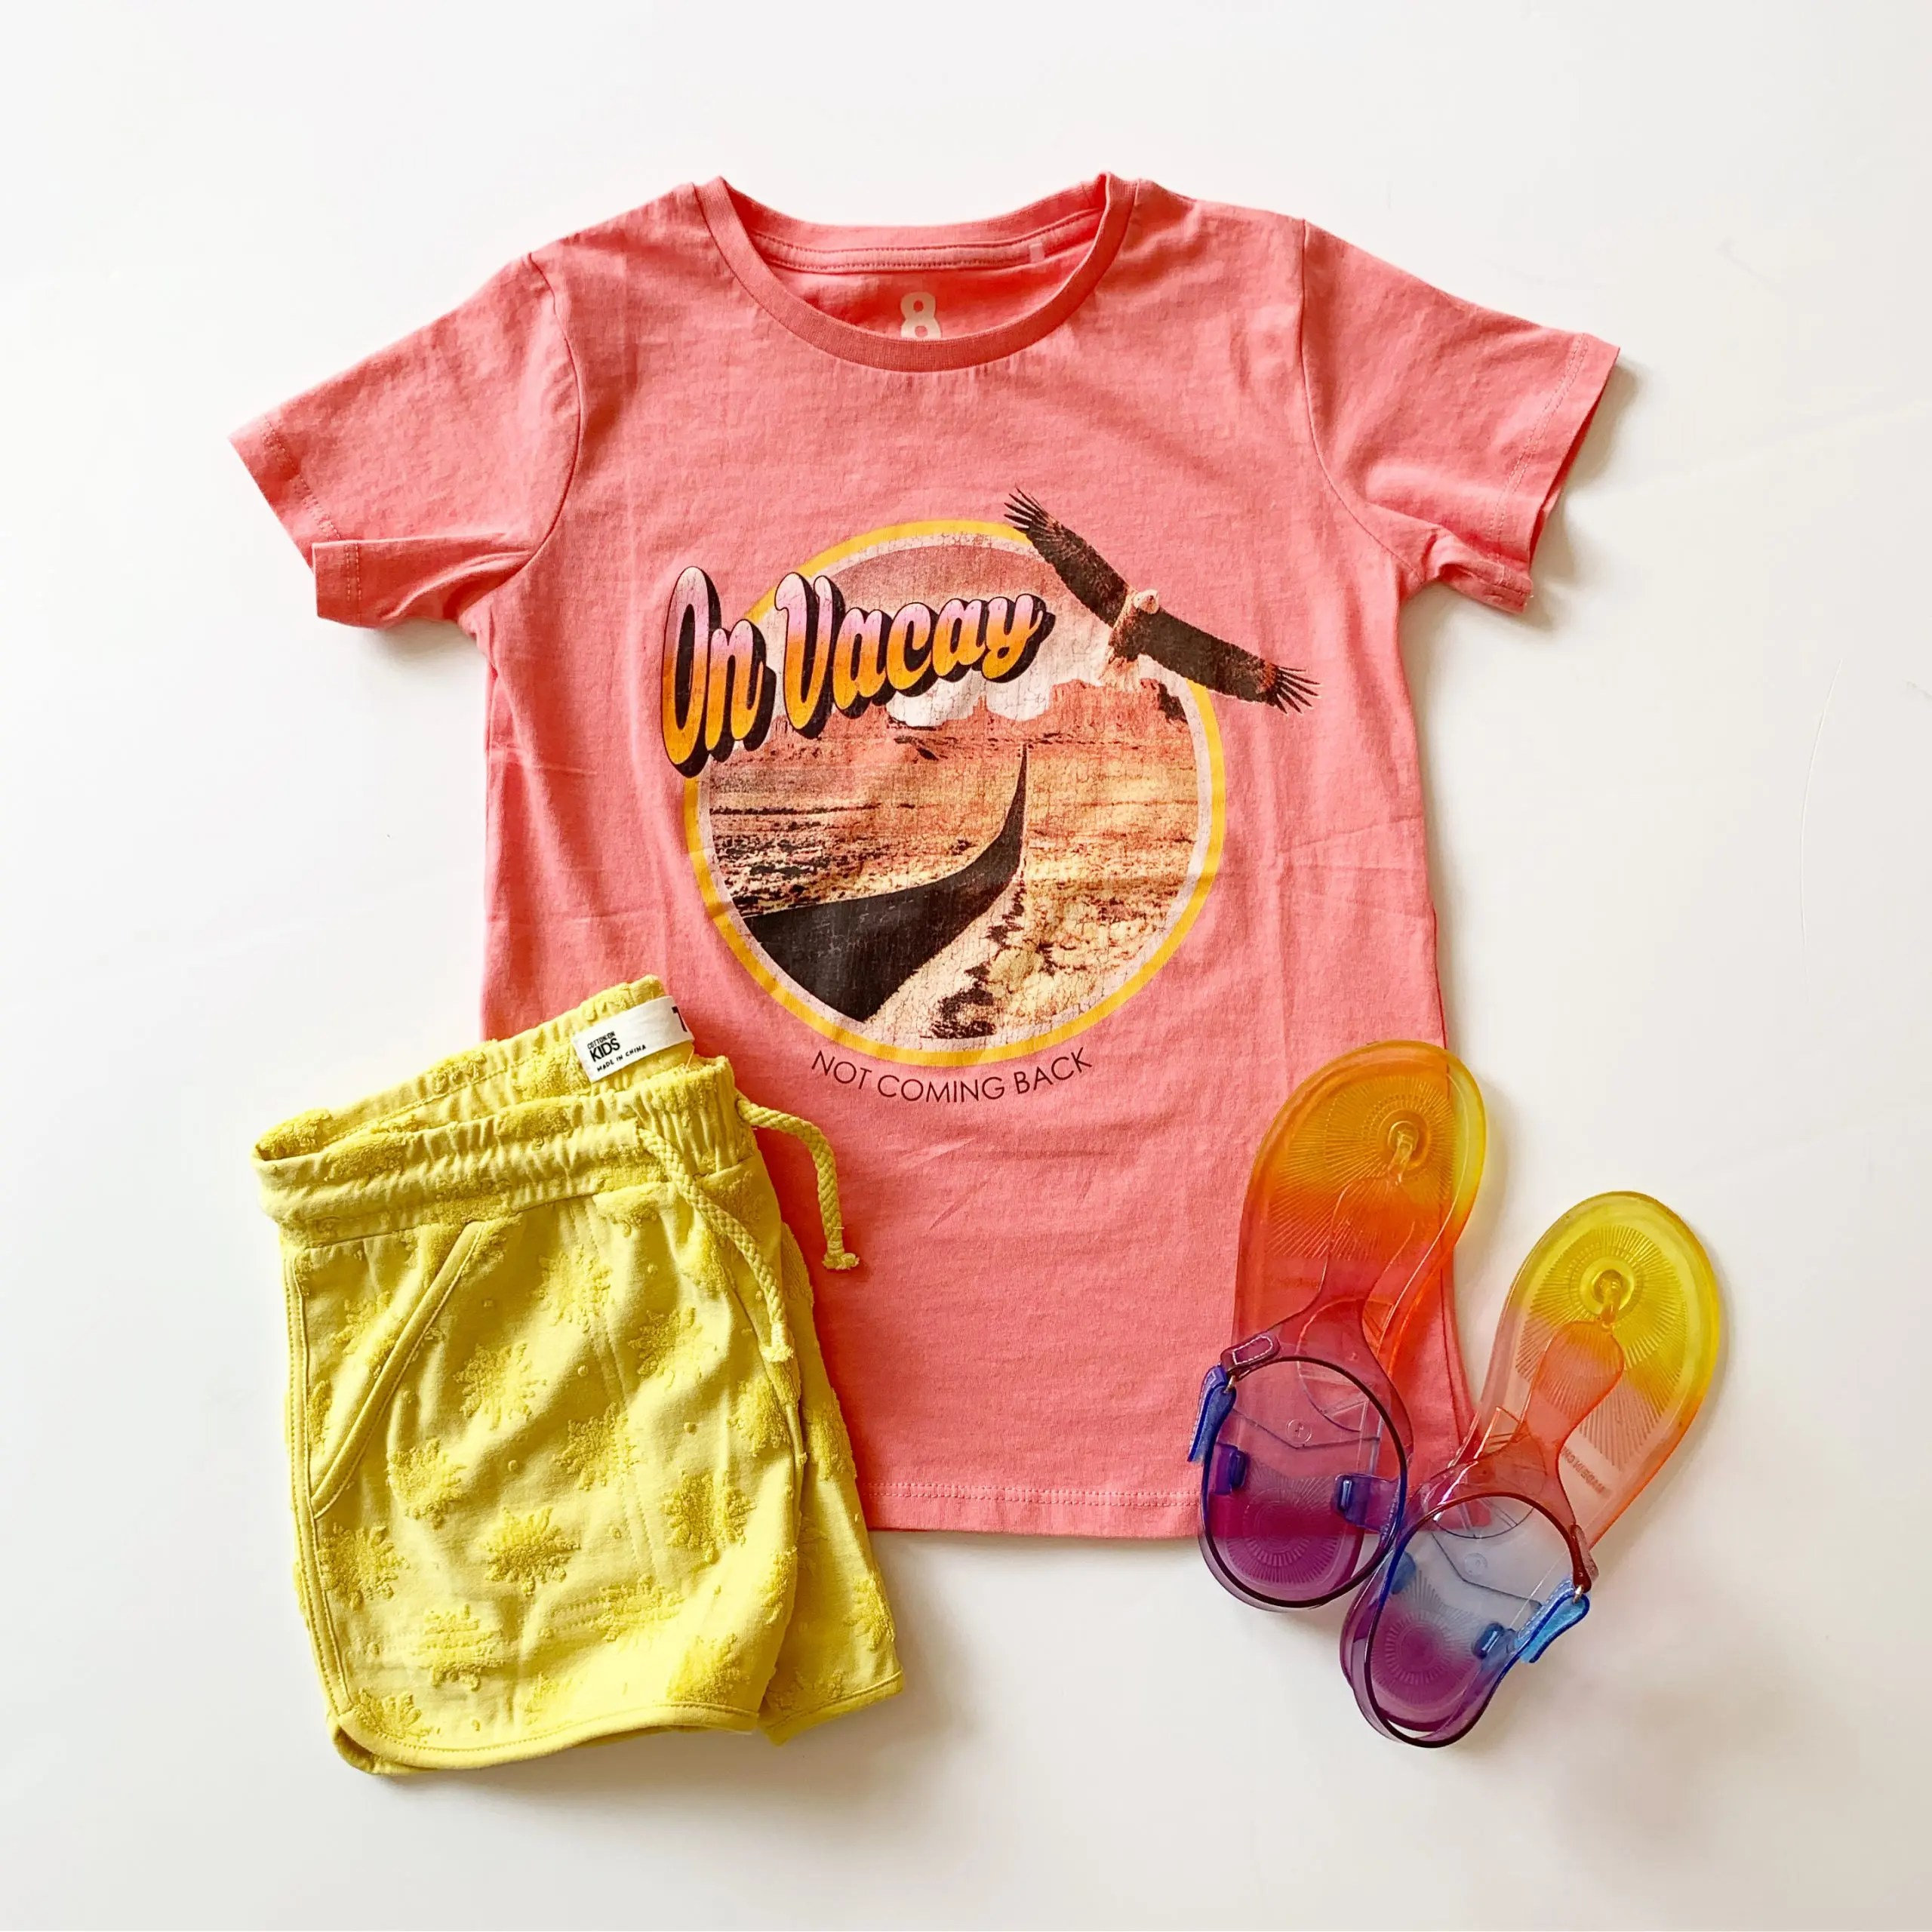 cotton on kids graphic tee and shorts with wonder nation rainbow jelly sandals